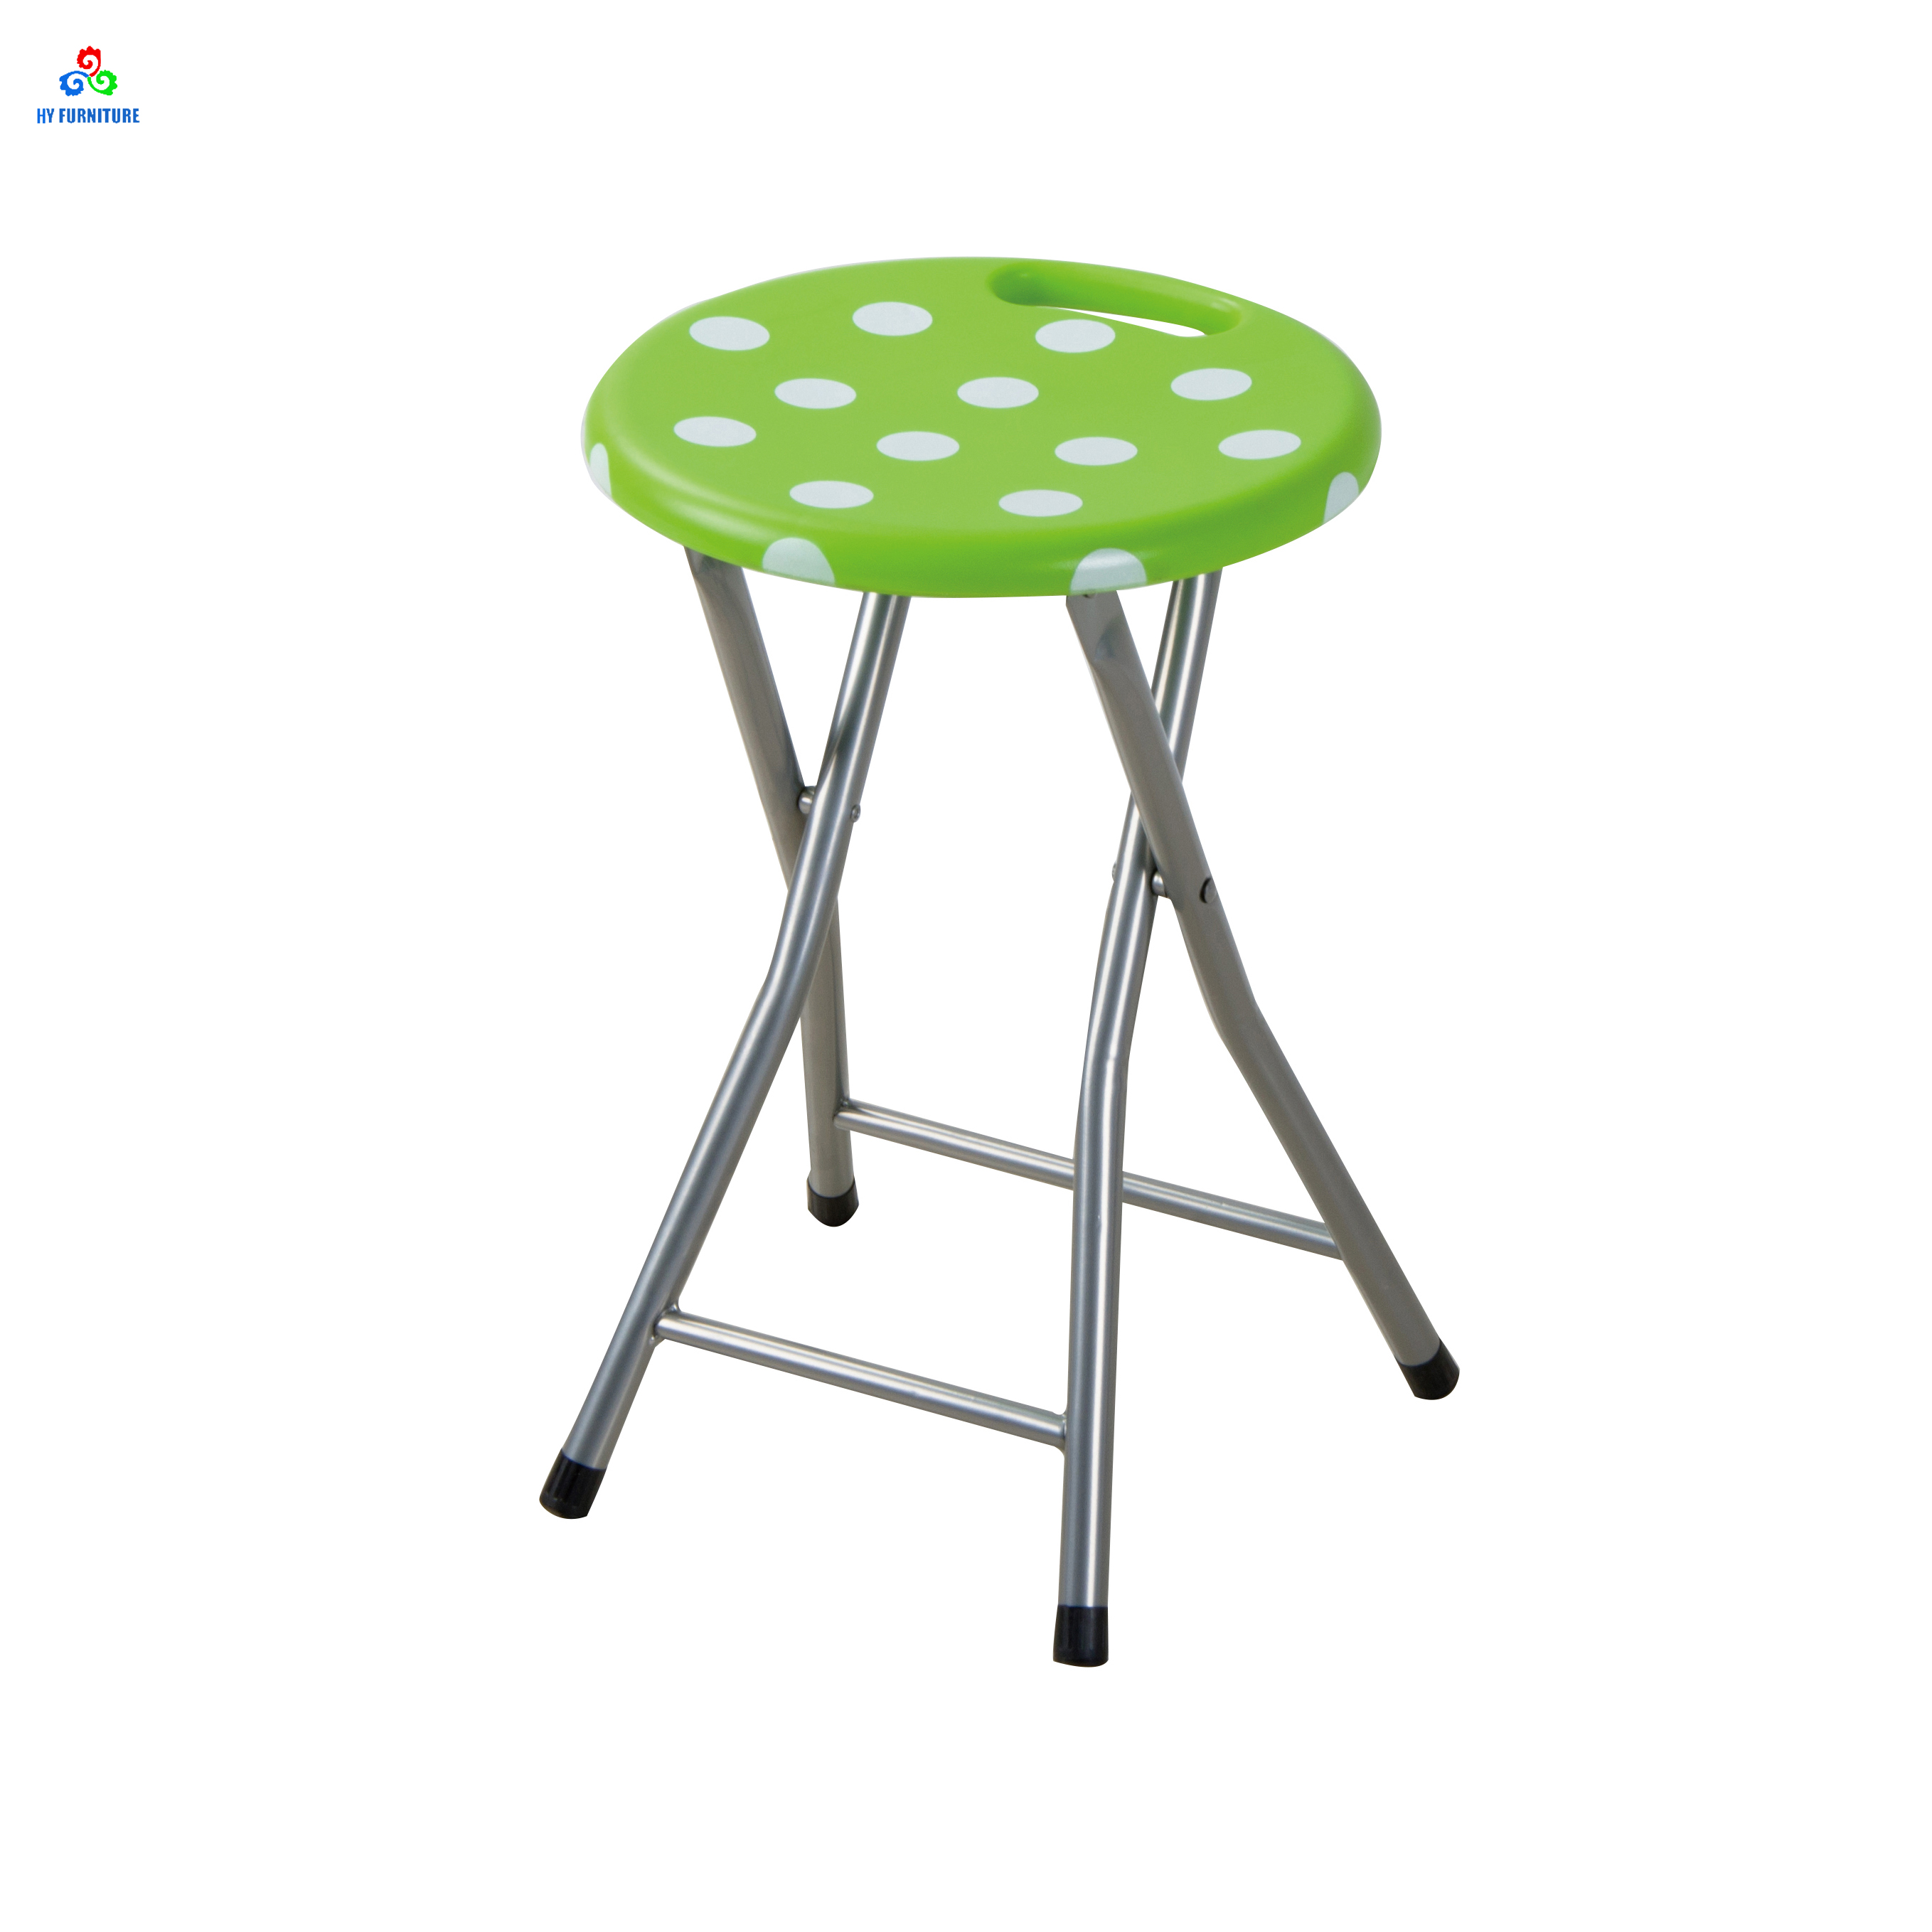 Small Stool Chair Unique Design Lab Furniture Steel Pipe Round Small Plastic Folding Lab Stool Chair Buy Lab Stool Chair Small Plastic Folding Chair Standing Stool